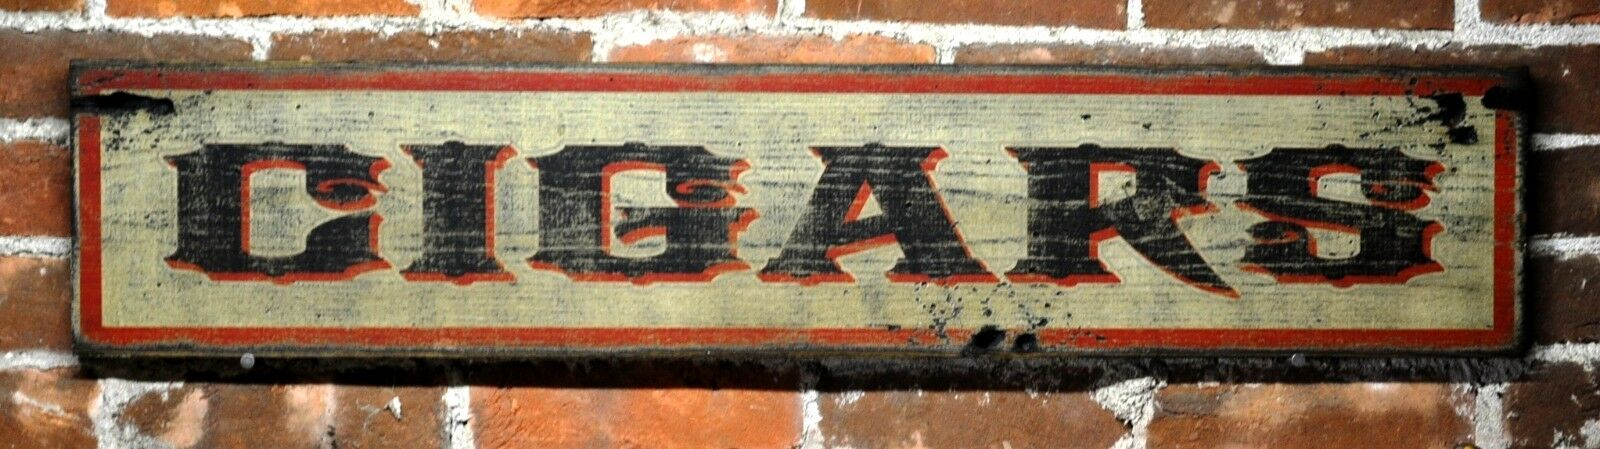 Classic Cigars Wood Sign - Rustic Hand Made Vintage Wooden Sign